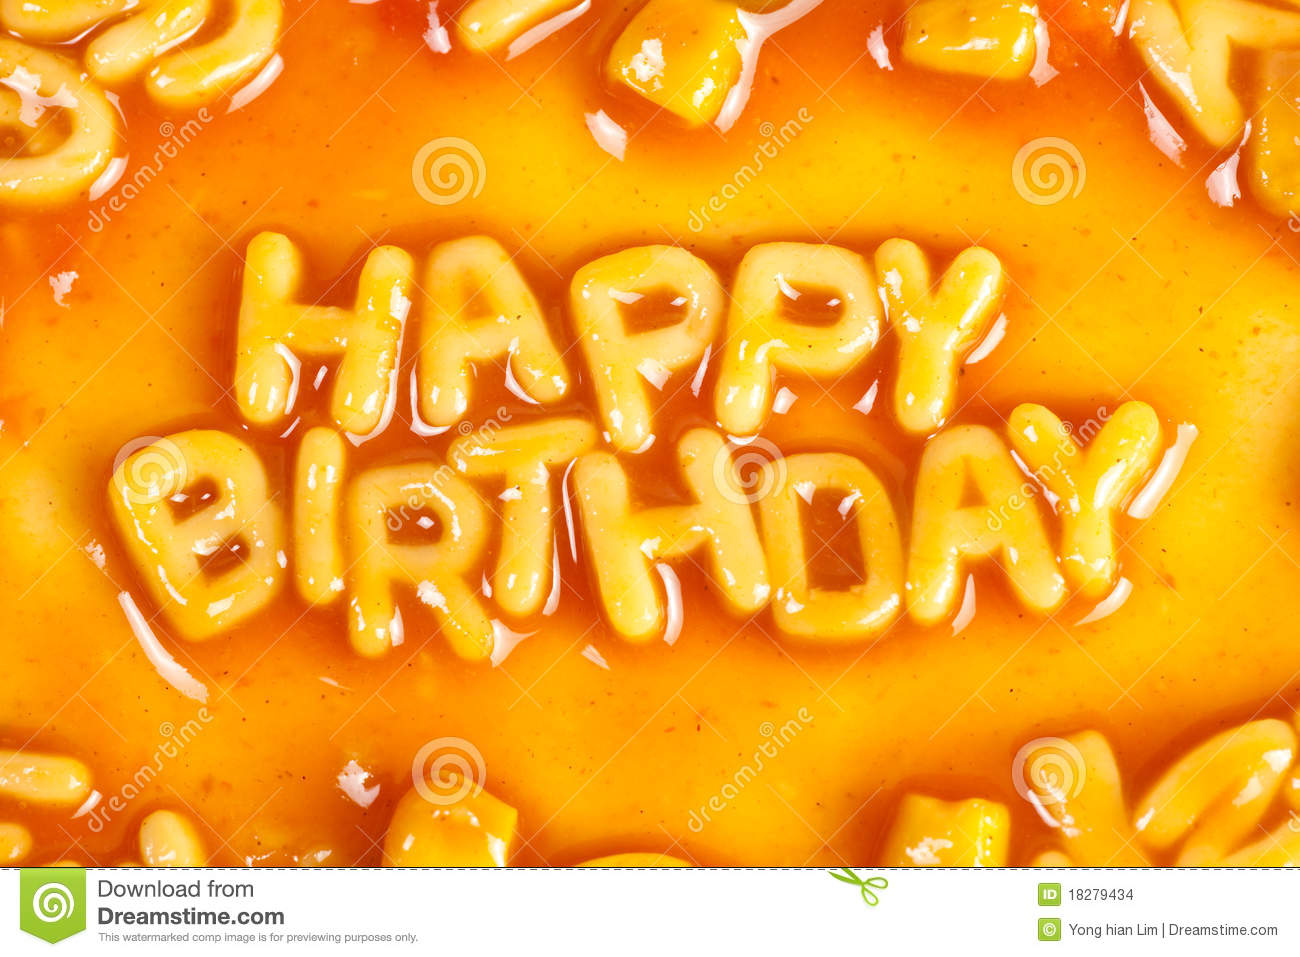 happy birthday stock images image 18279434 ketchup clipart images ketchup clip art images